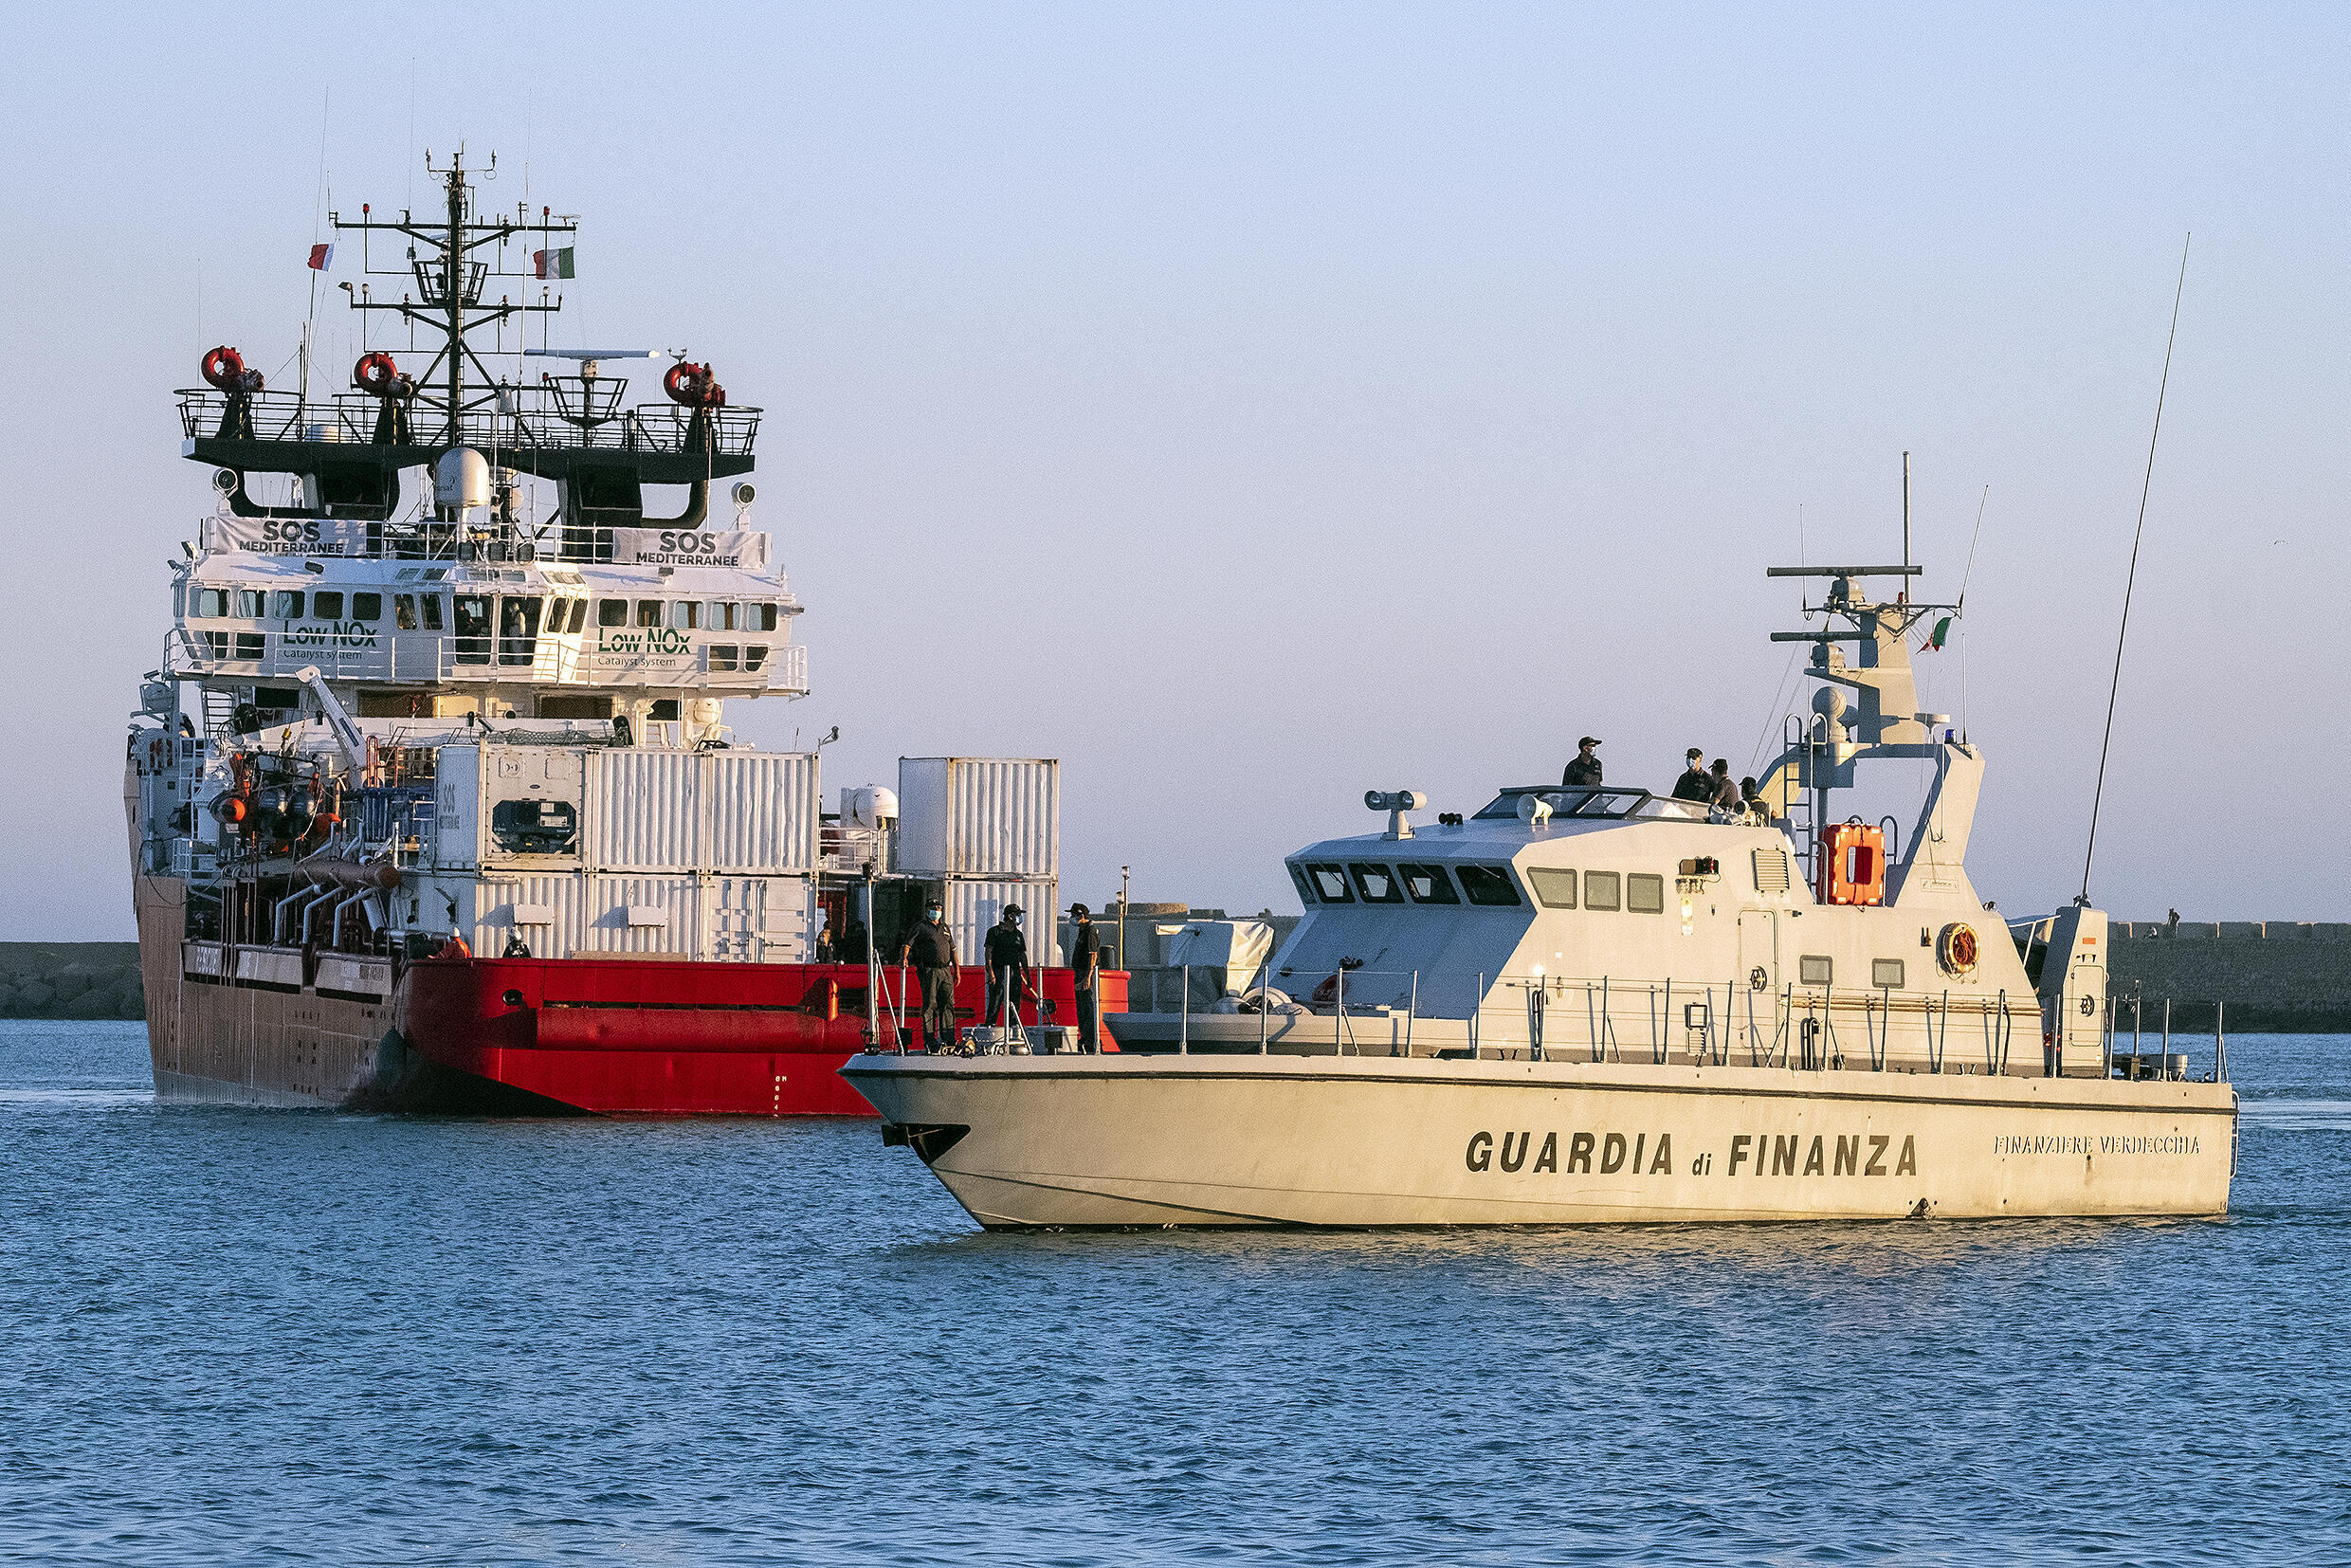 Migrants on board the humanitarian aid boat Ocean Viking, chartered by charity group SOS Mediterranee, arrive on July 6, 2020 in the harbour of Porto Empedocle on the island of Sicily.